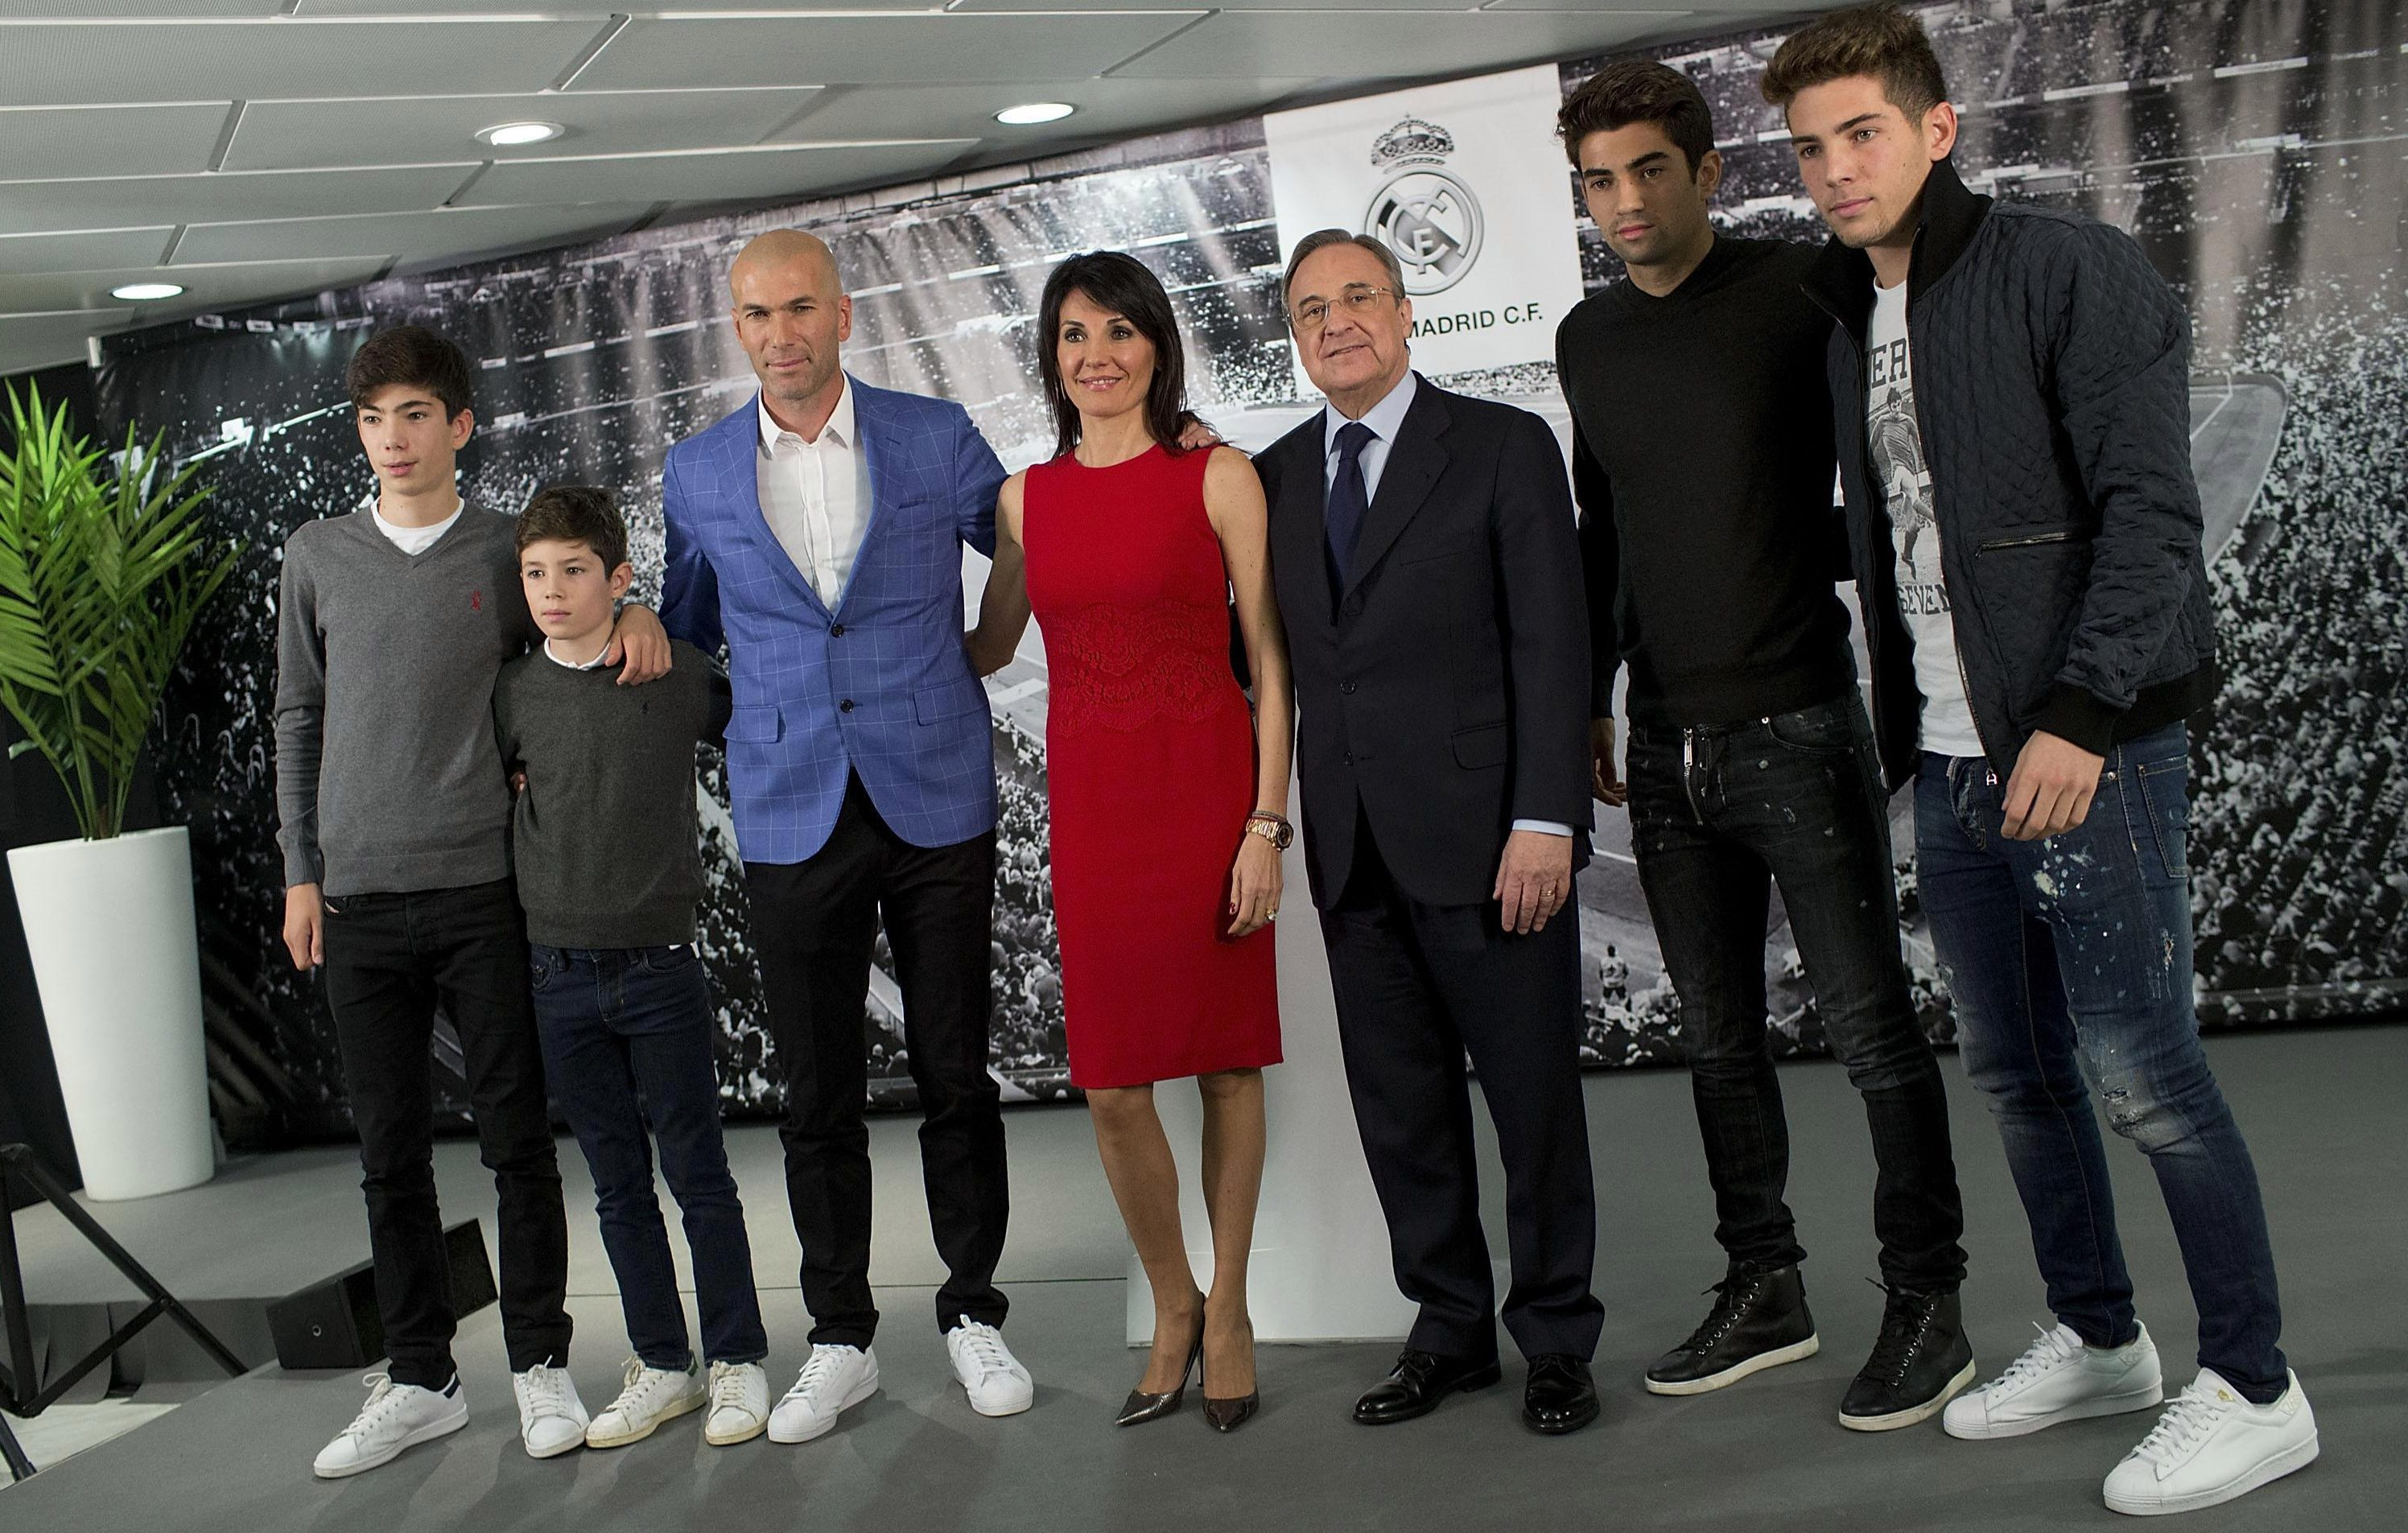 Enzo, Luca, Theo and Elyaz have all followed in their father's footsteps